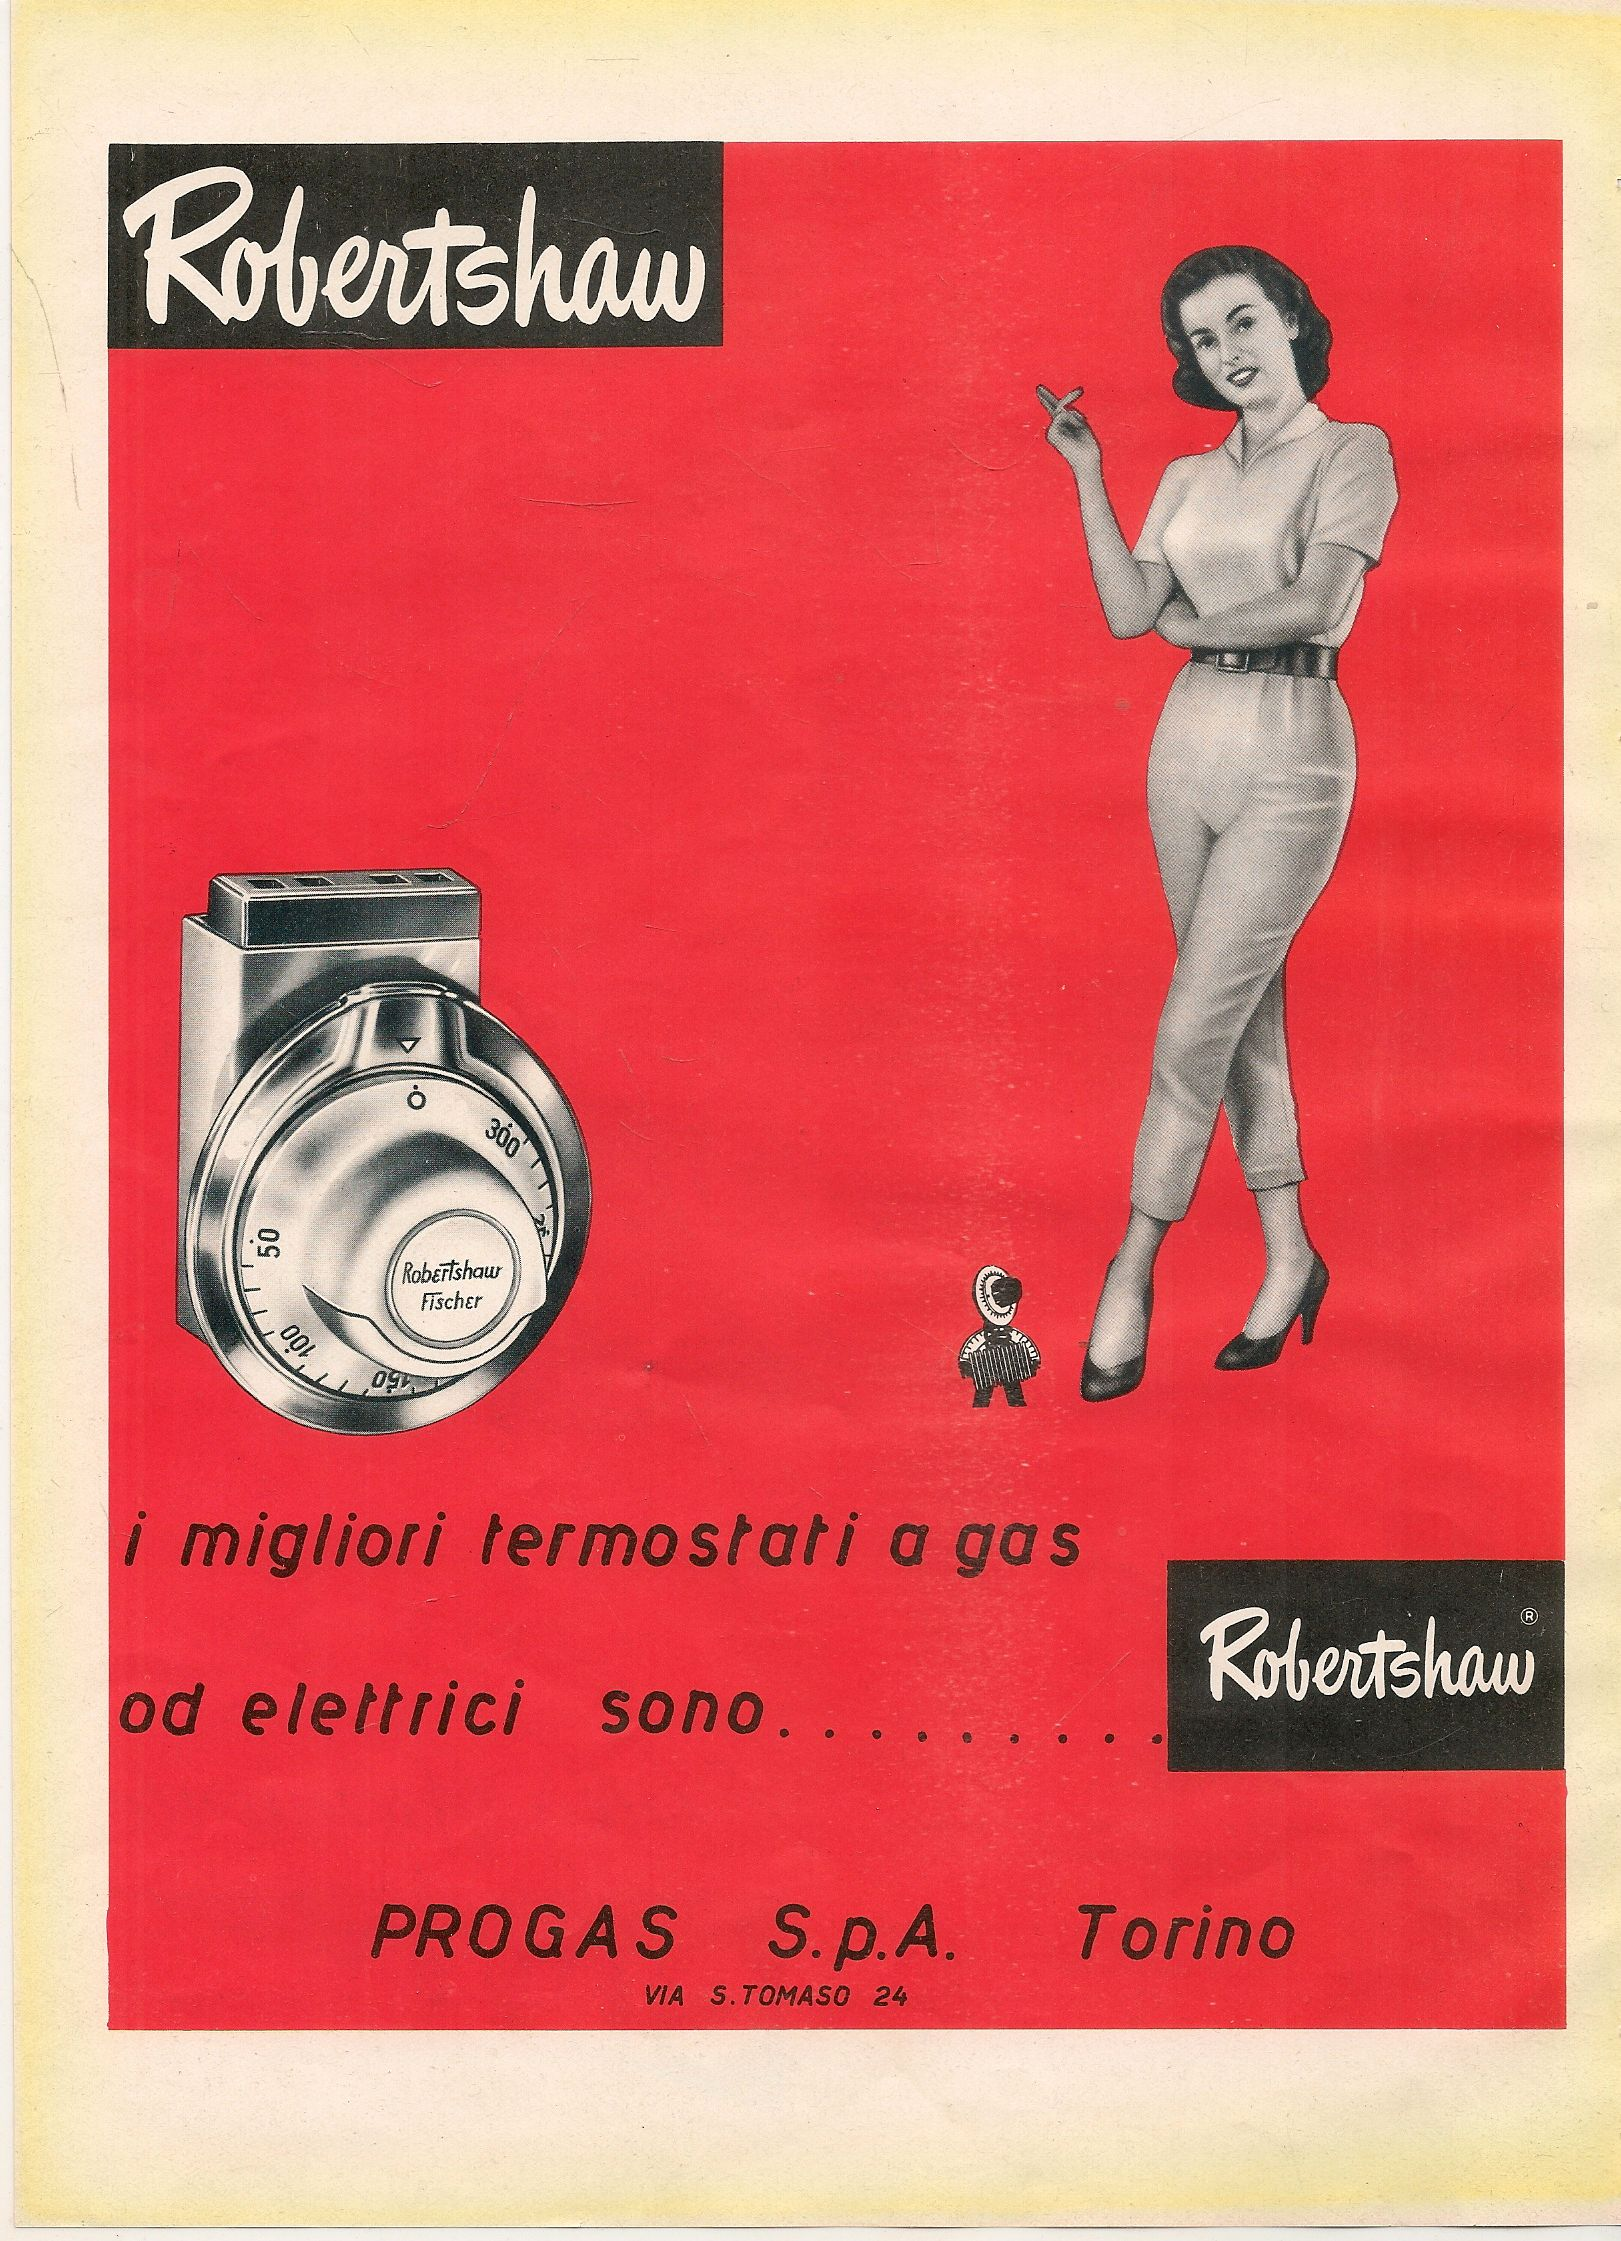 ROBERTSHAW I MIGLIORI TERMOSTATI A GAS - ADVERTISING